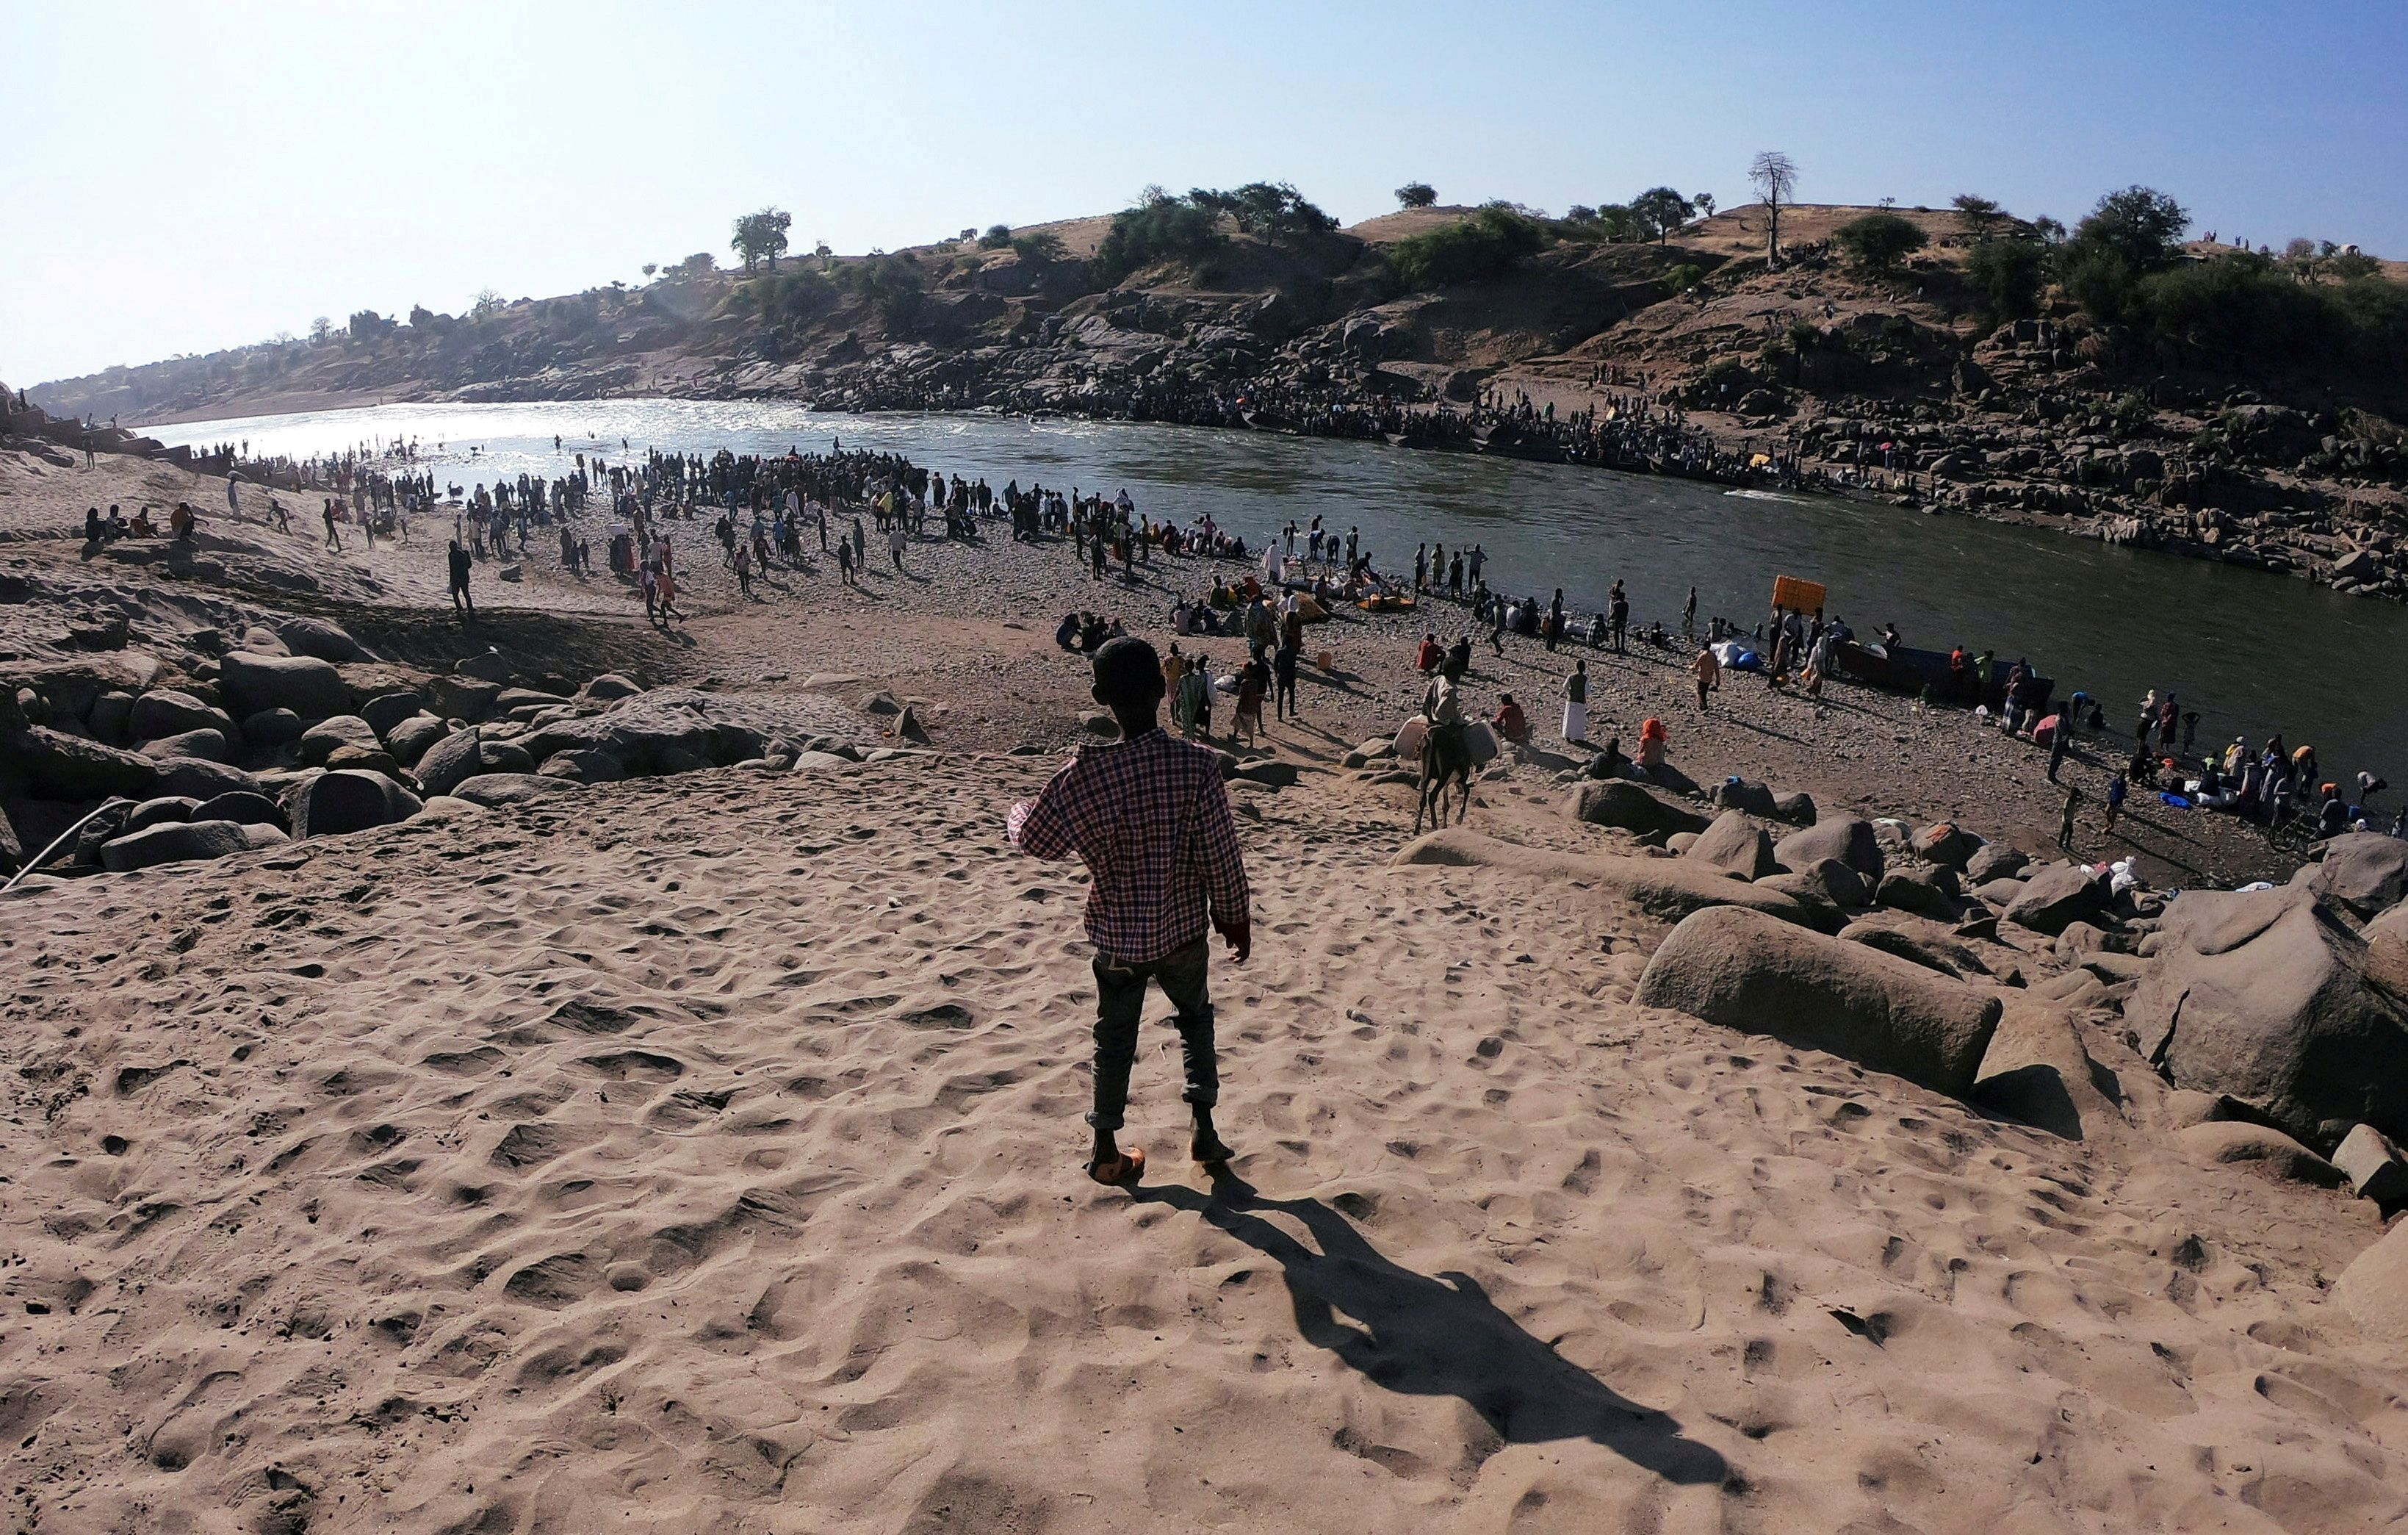 FILE PHOTO: Ethiopians are seen at the Tekeze River on the Sudan-Ethiopia border in Hamdayet village in eastern Kassala state